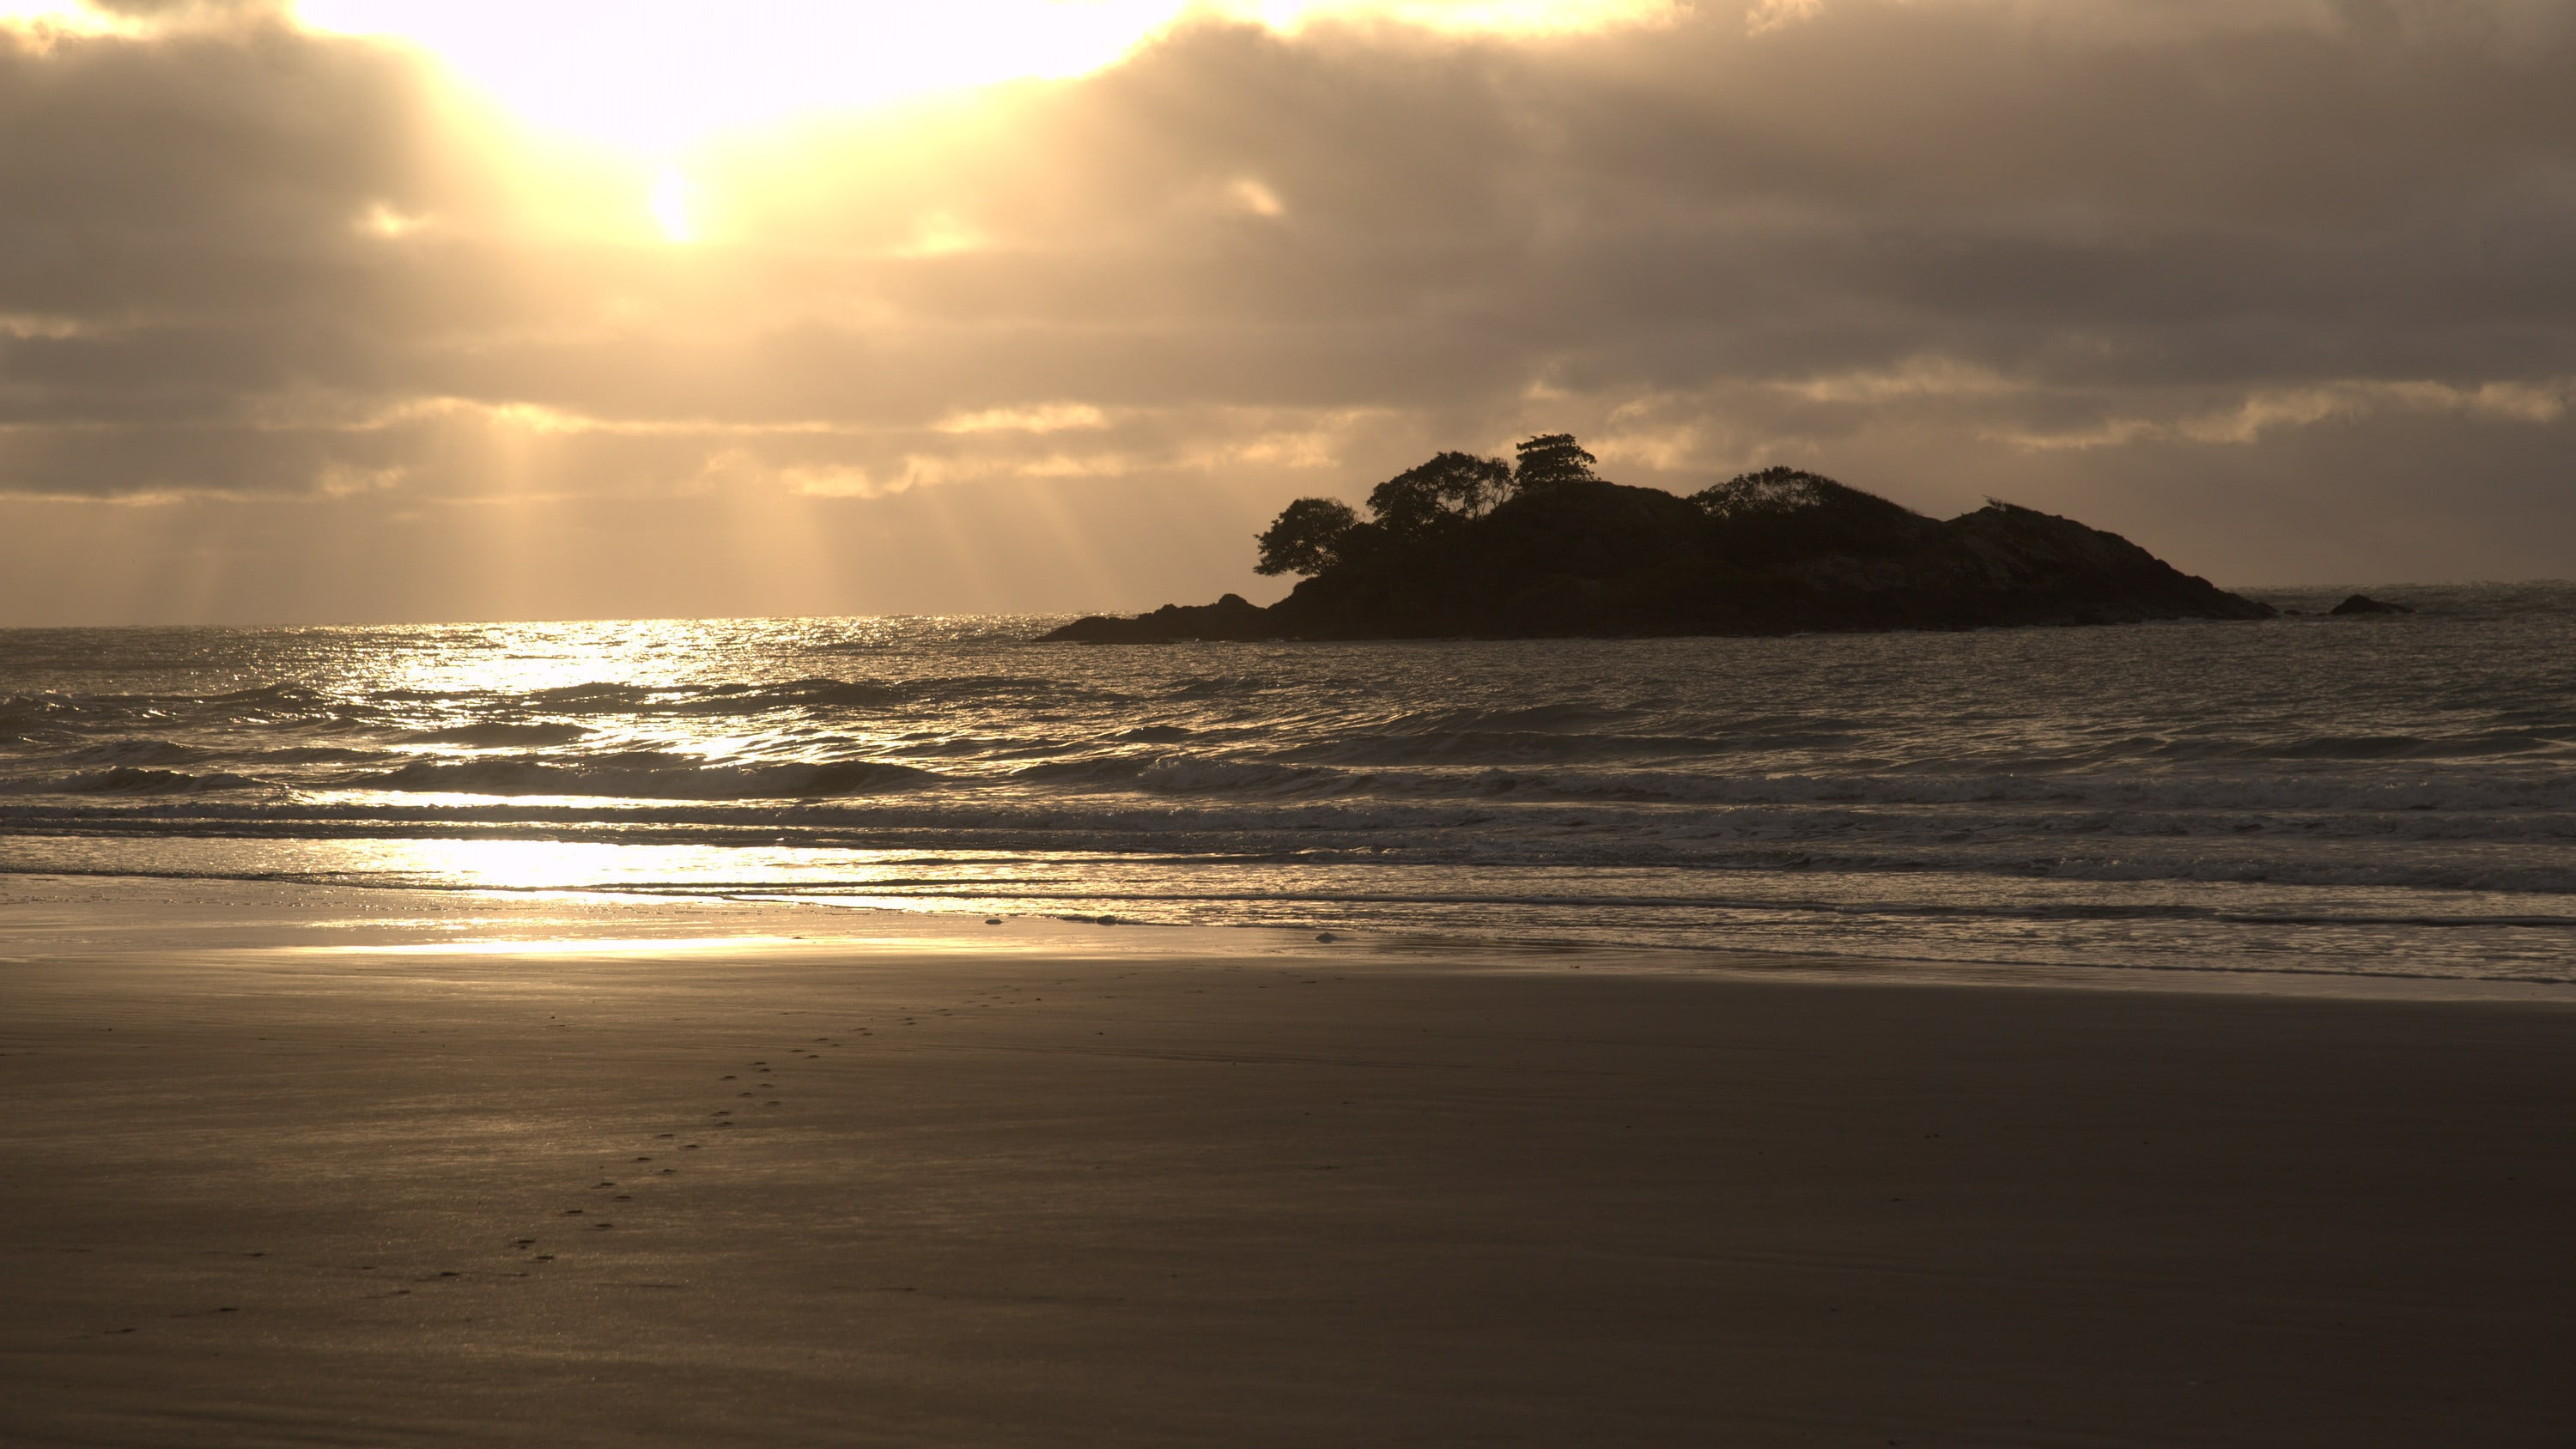 Sunrise as seen from North Stradbroke Island. (National Geographic for Disney+)